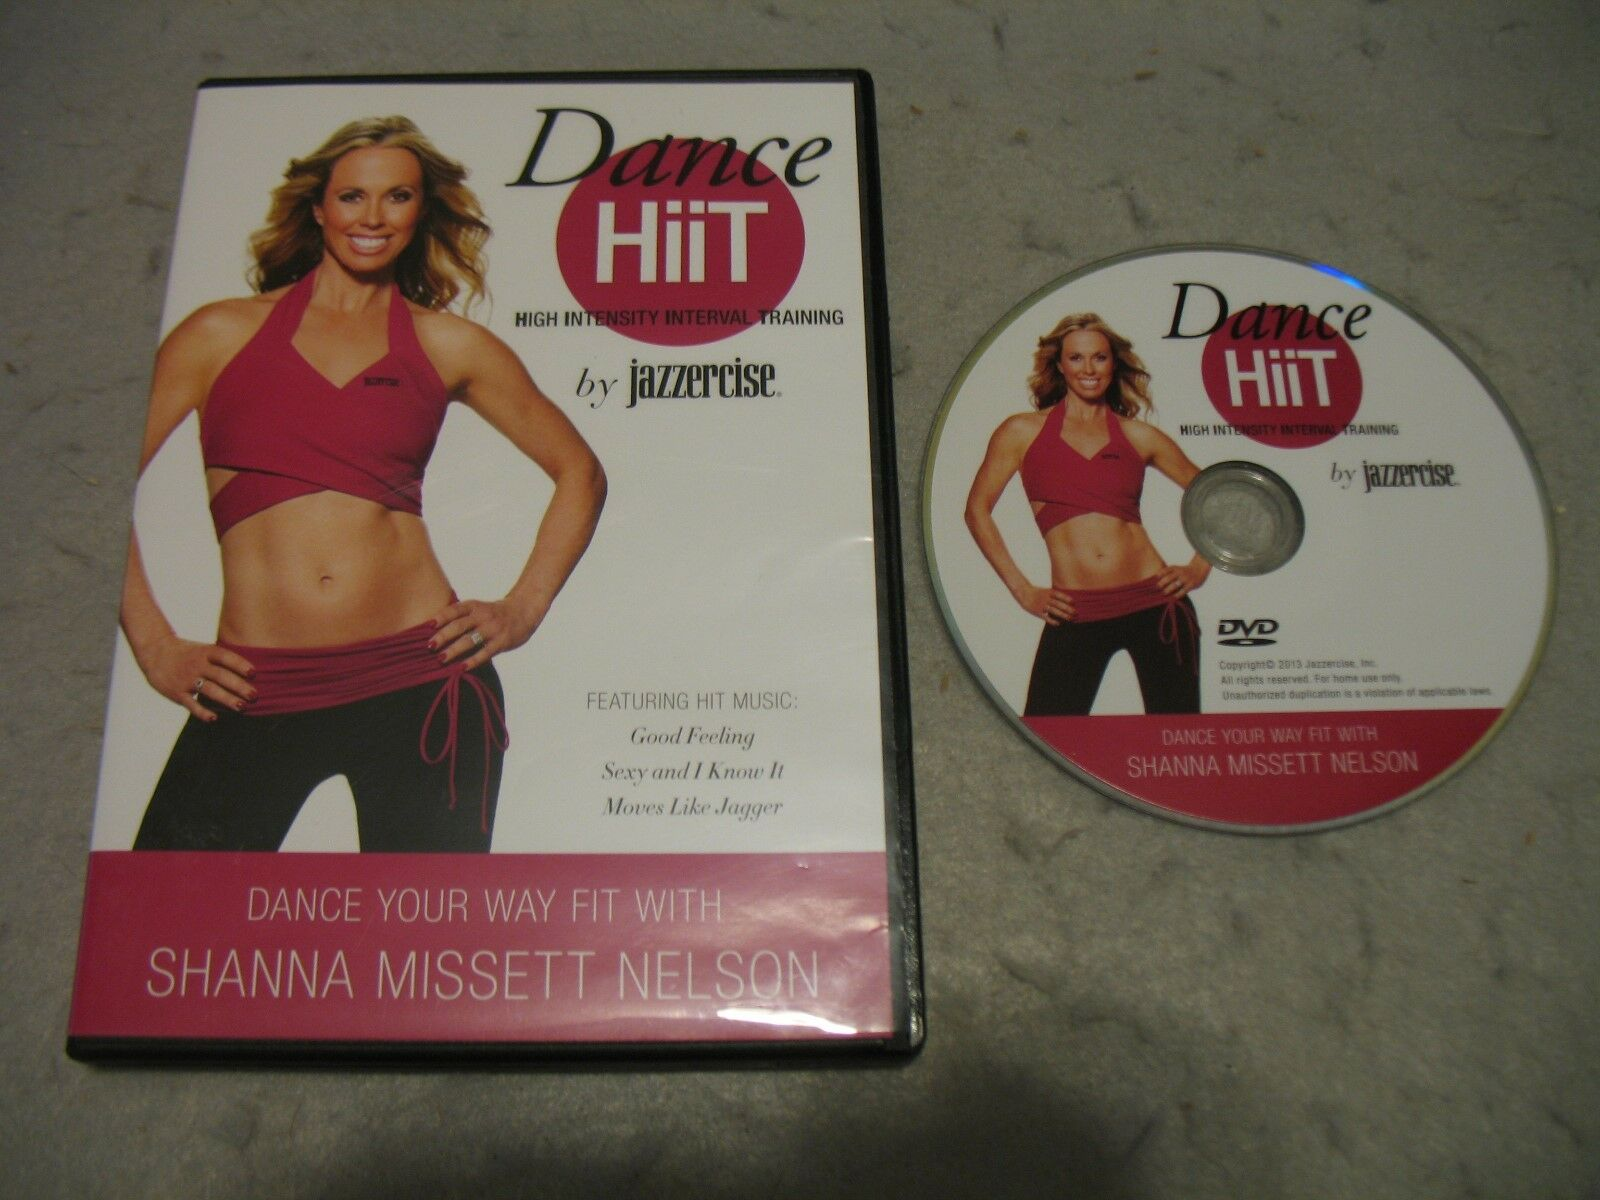 Jazzercise Dance Hiit Workout DVD Aerobic Exercise Fitness Shanna Missett Nelson Reviews